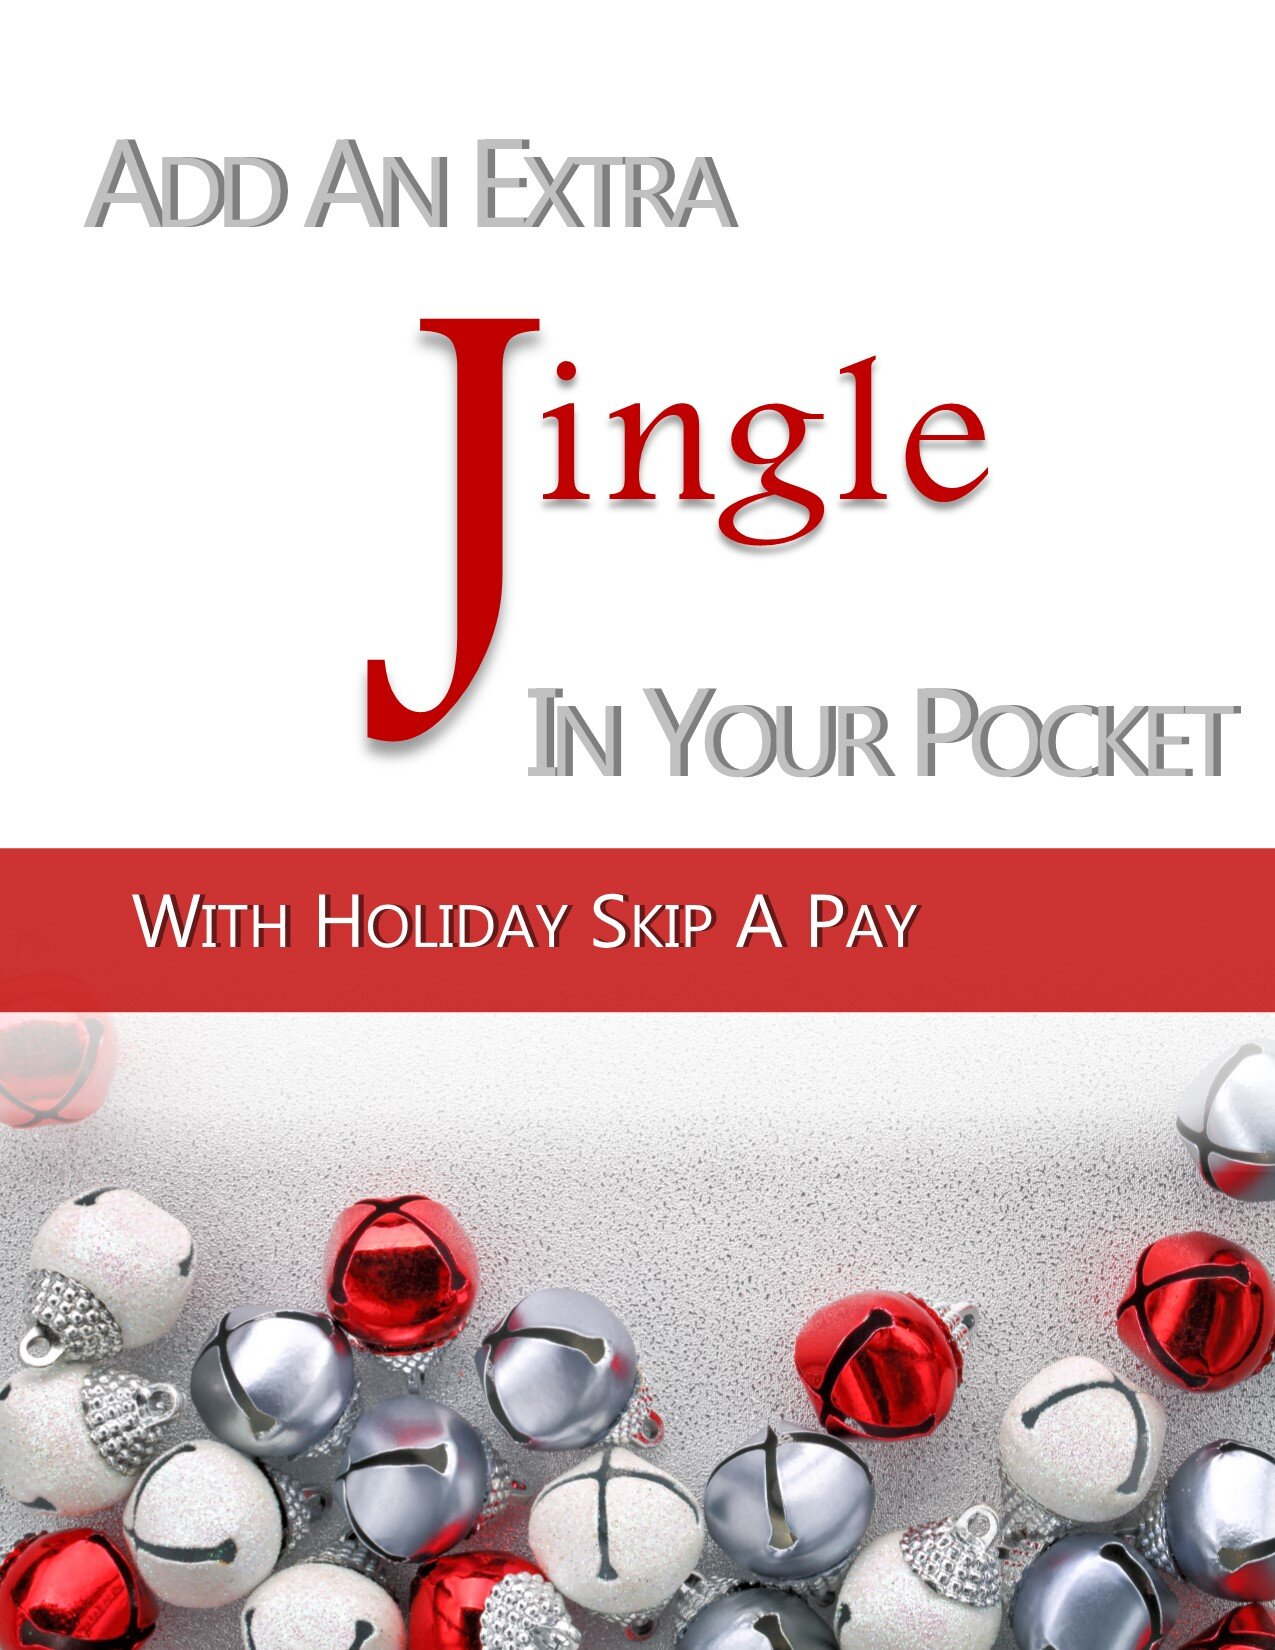 ADD-AN-EXTRA-JINGLE-IN-YOUR-POCKET-WITH-HOLIDAY-SKIP-A-PAY